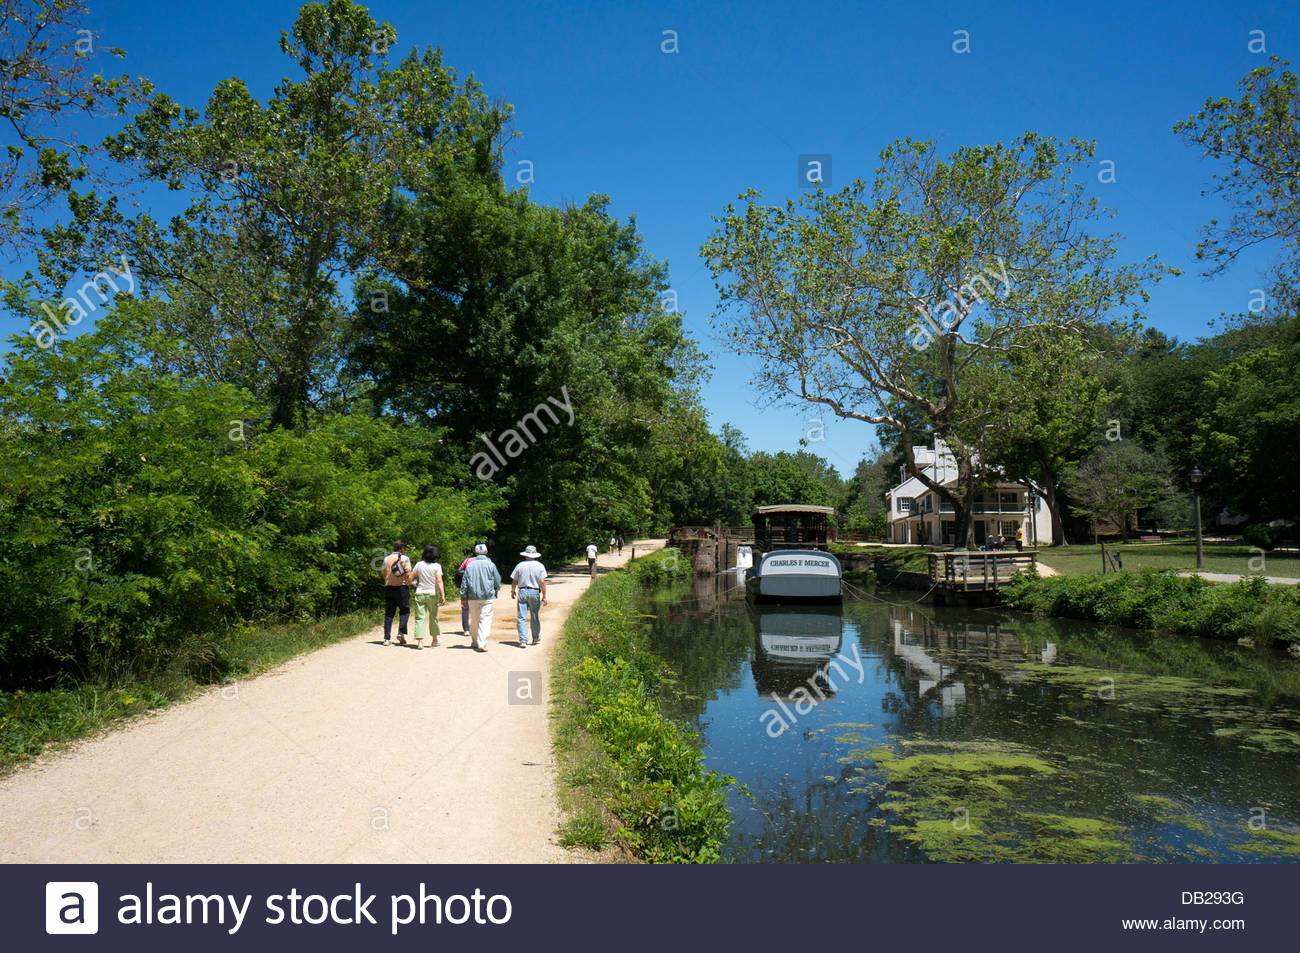 Hikers approach the canal boat on the C&O Canal at Great Falls tavern in Maryland - Stock Image